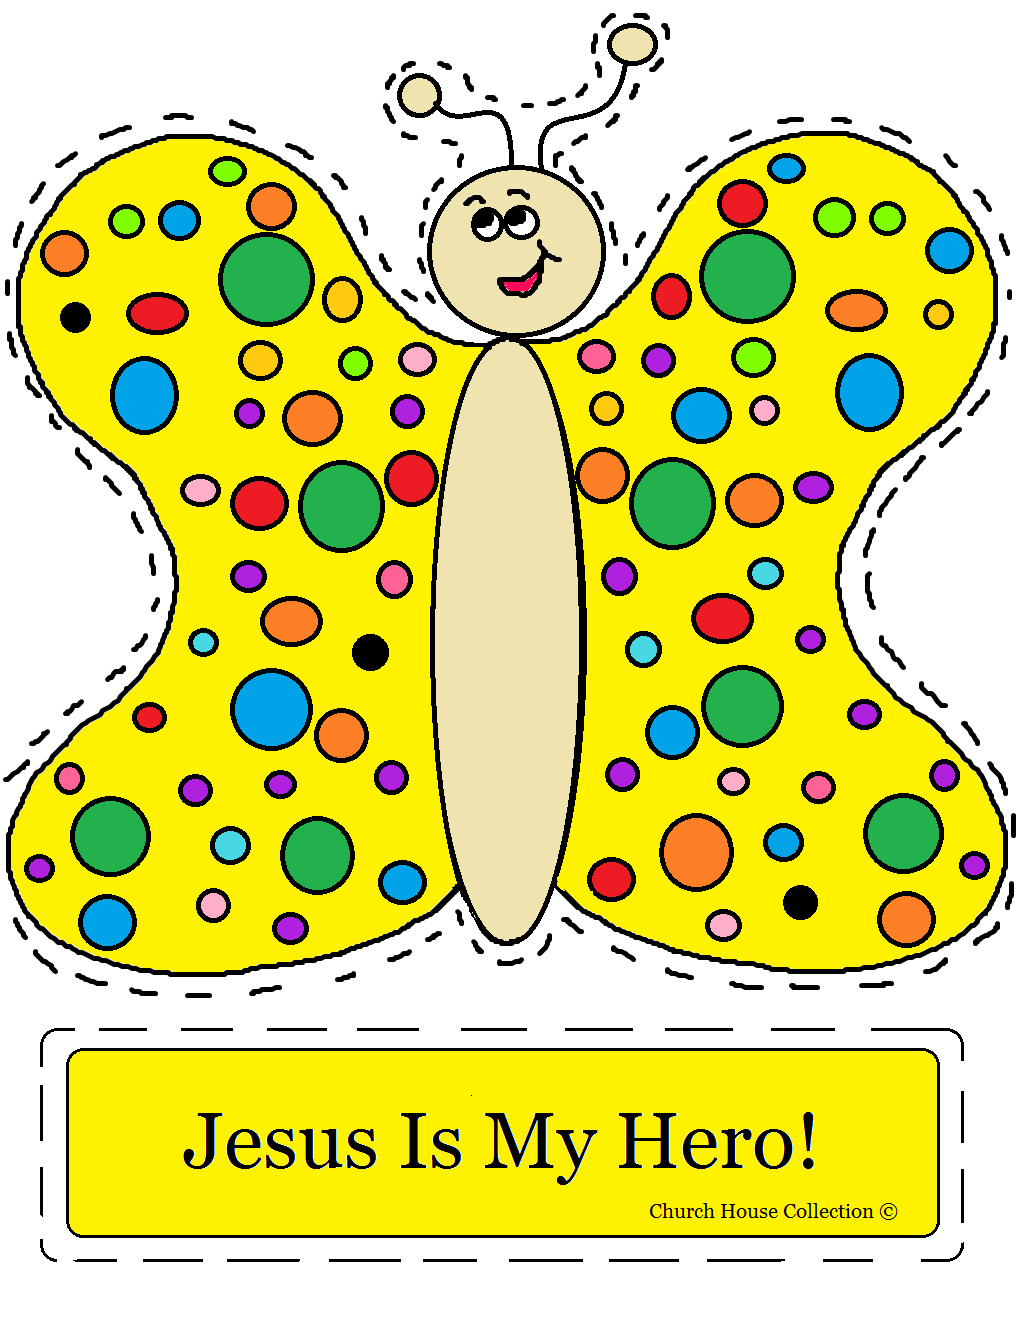 Toddler sunday school crafts - Church House Collection Blog Jesus Is My Hero Butterfly Cut Out Craft For Toddler Sunday